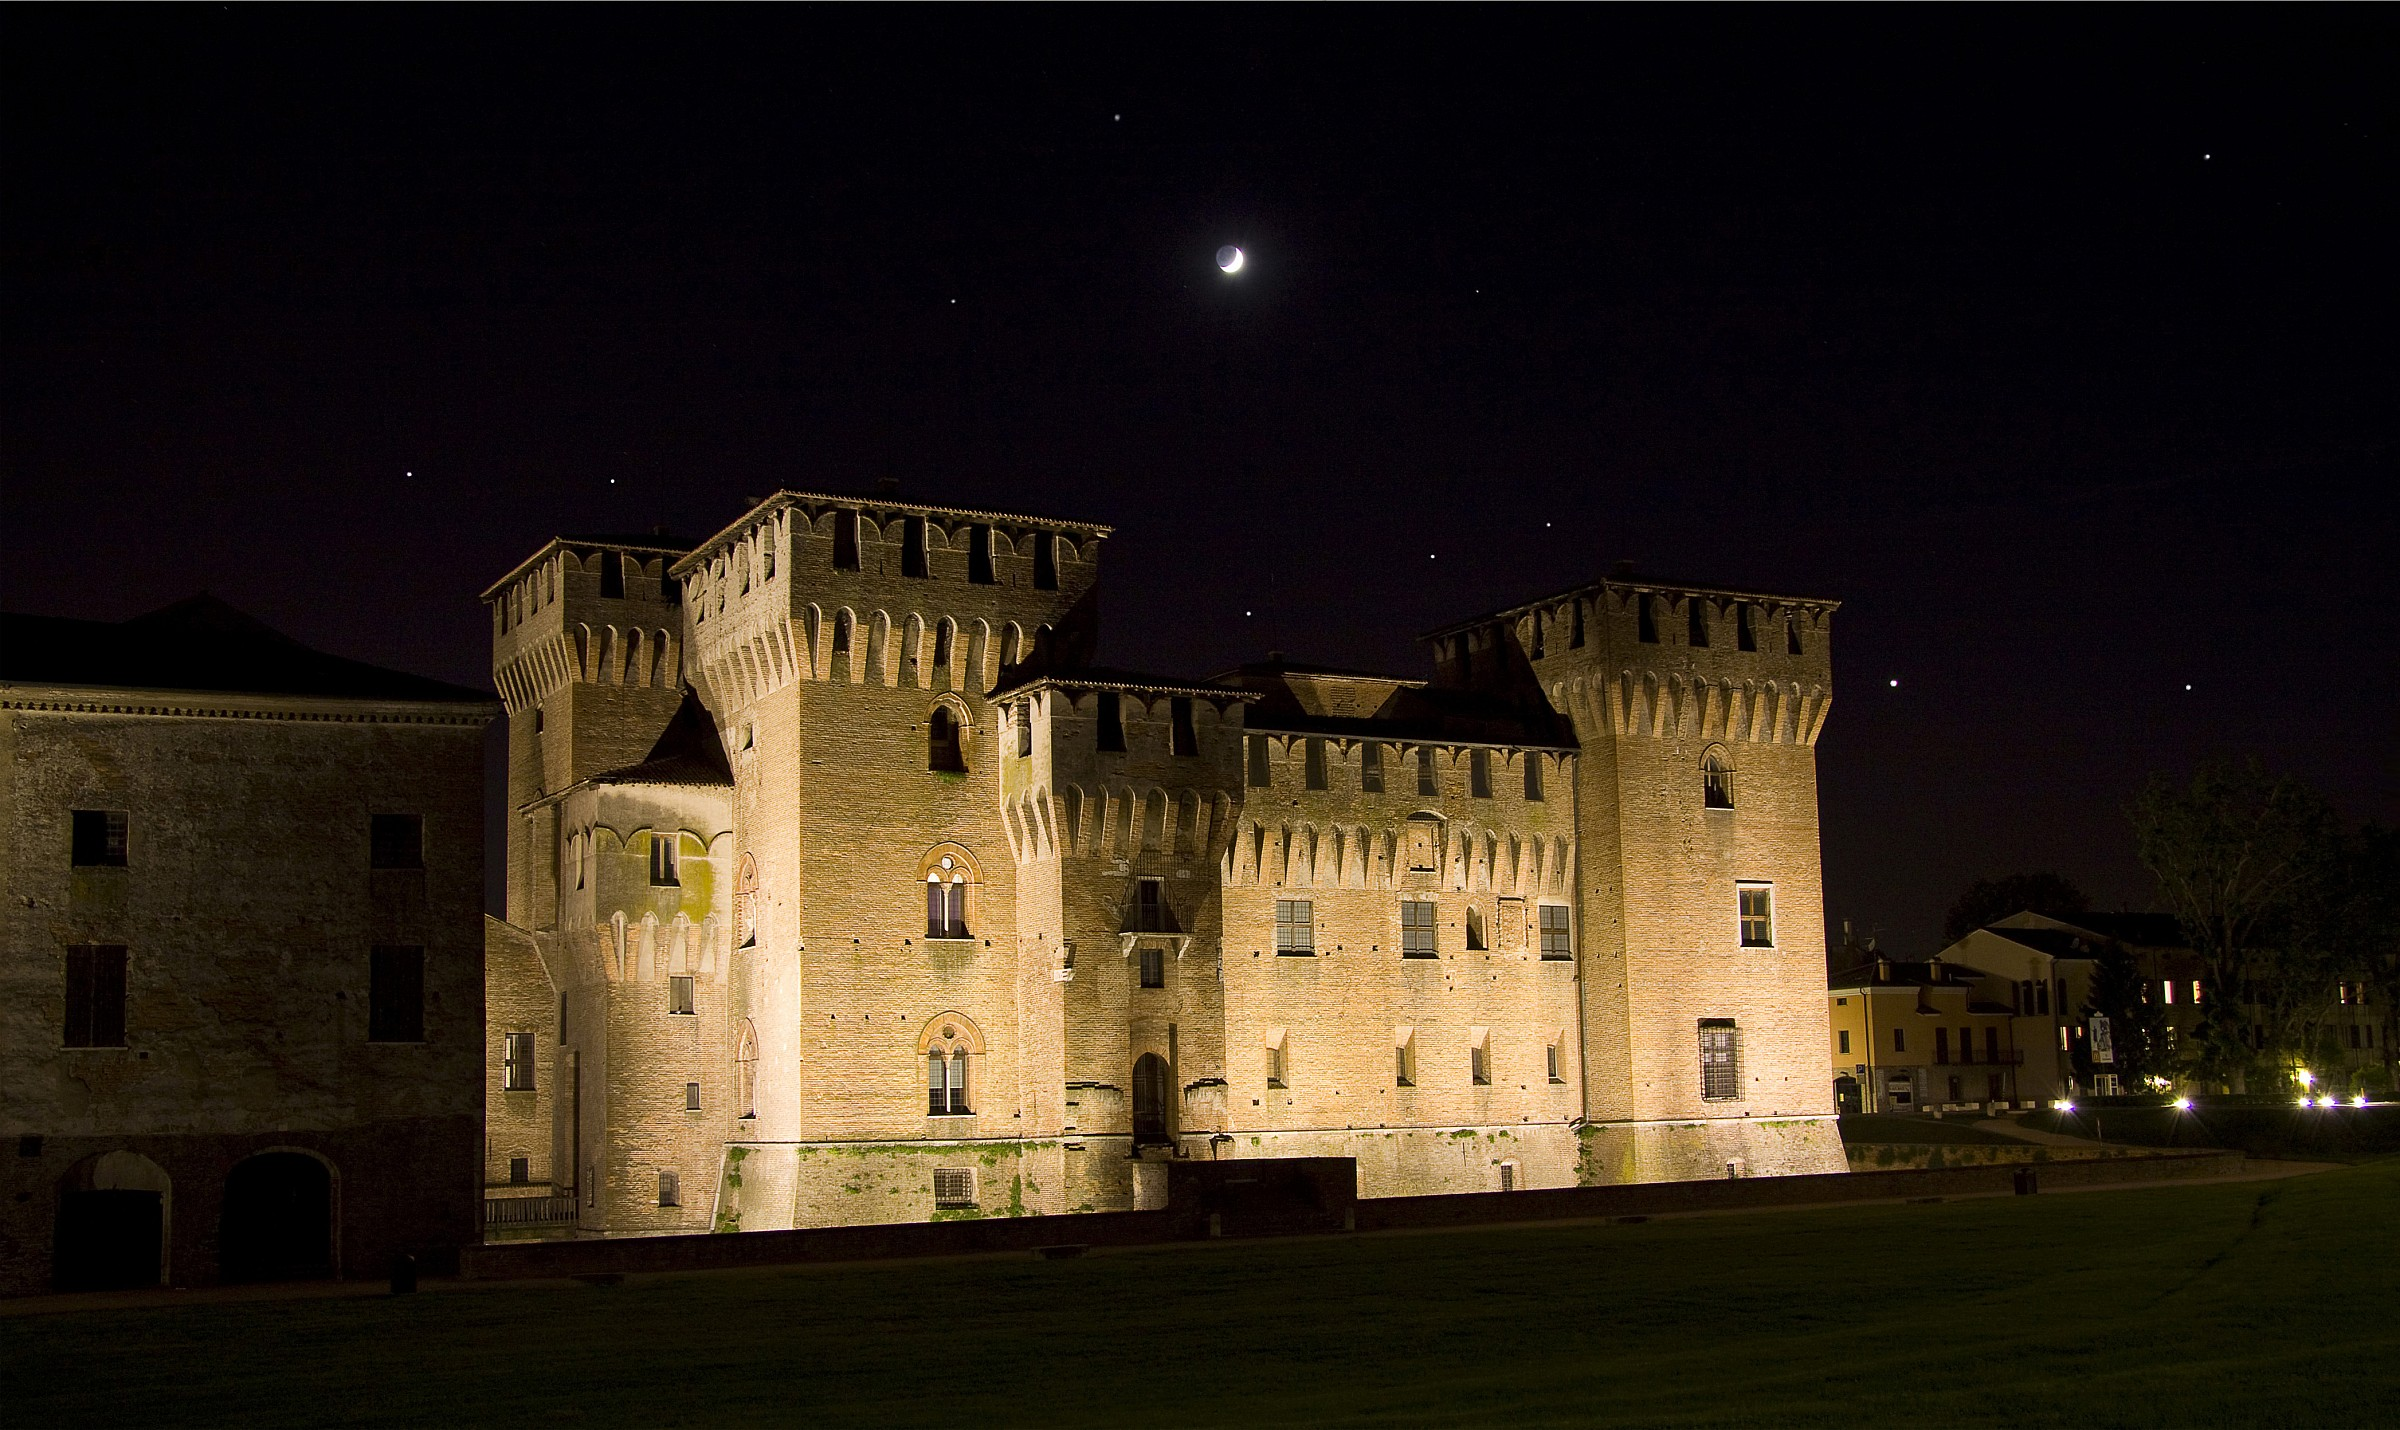 Starry night at the castle...